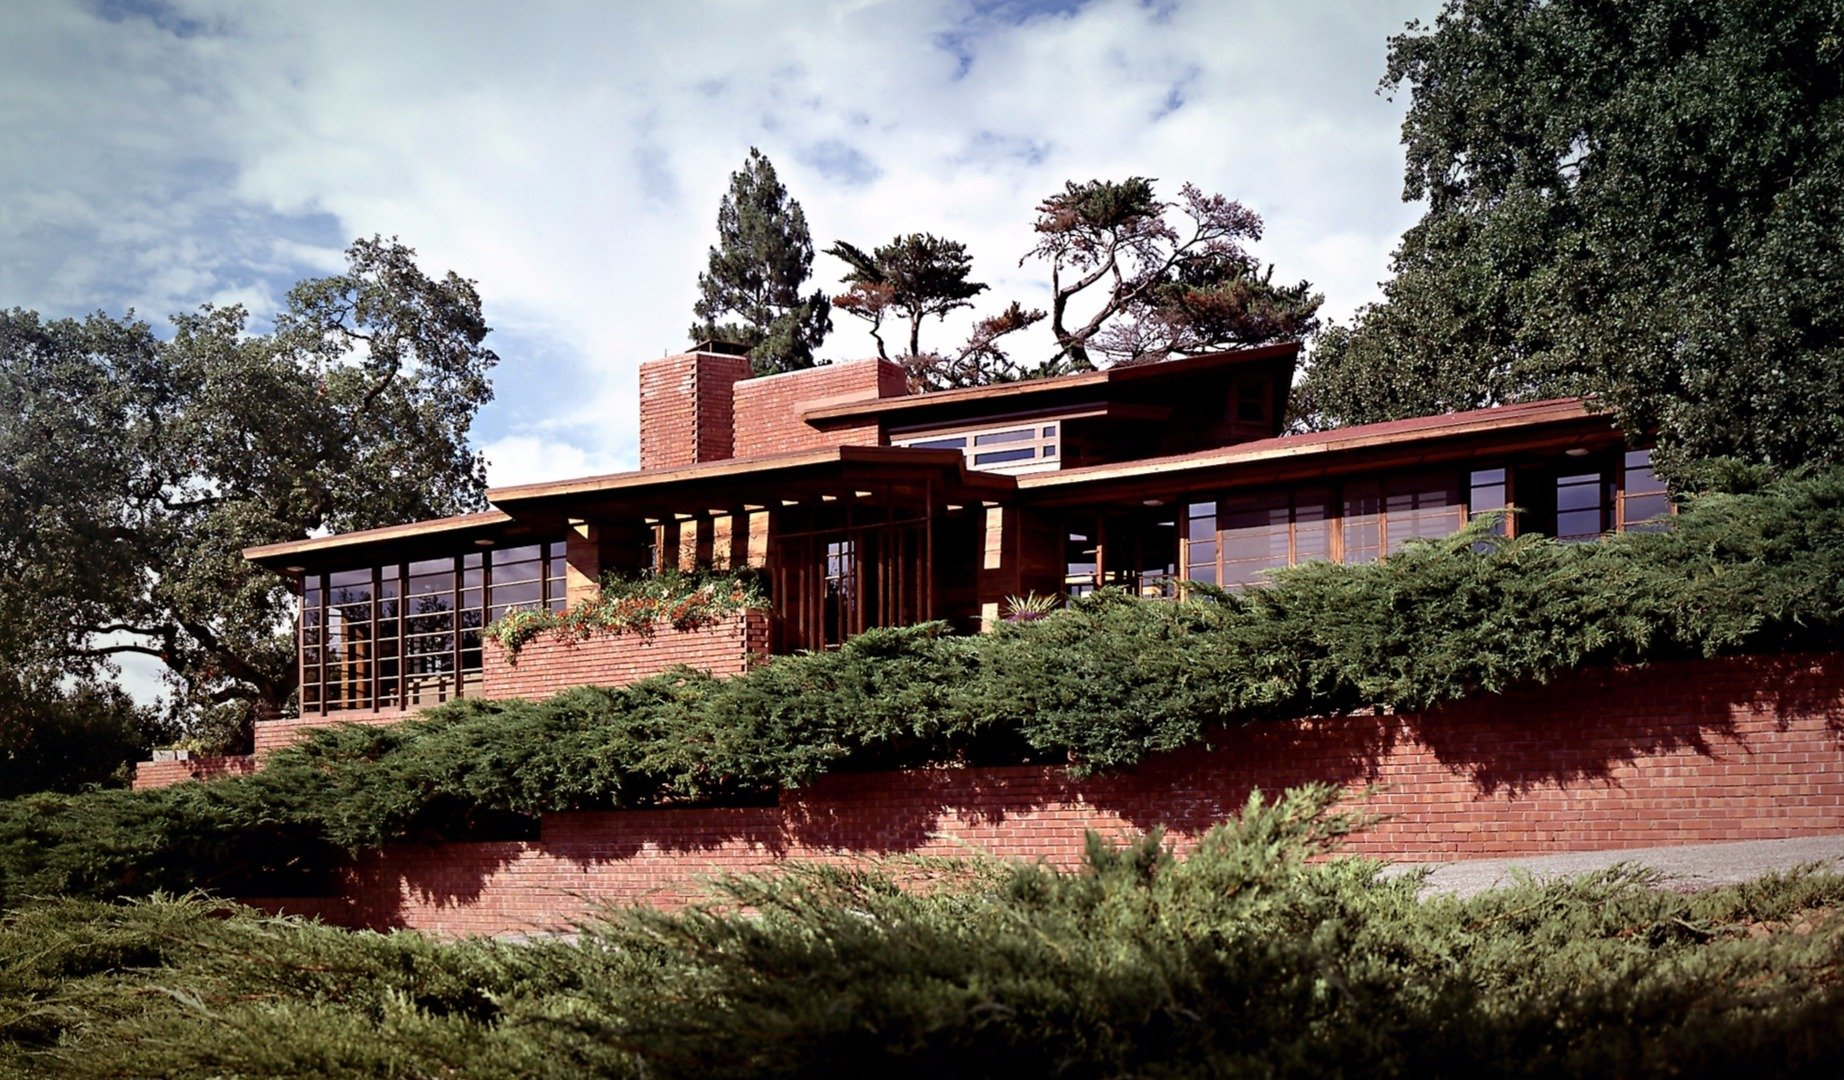 Top 16 Frank Lloyd Wright Houses You Can Tour | Incollect Invalid Residential House Plan on residential building, apps for house plans, canal front house plans, title 24 house plans, roadside house plans, simplex house plans, high density house plans, architectural house plans, residential home kits, unique small house plans, storefront house plans, house plans house plans, construction plans, custom home plans, 2400 sqft house plans, home house plans, simple house plans, luxury 4 bedroom house plans, decorative house plans, mediterranean house plans,